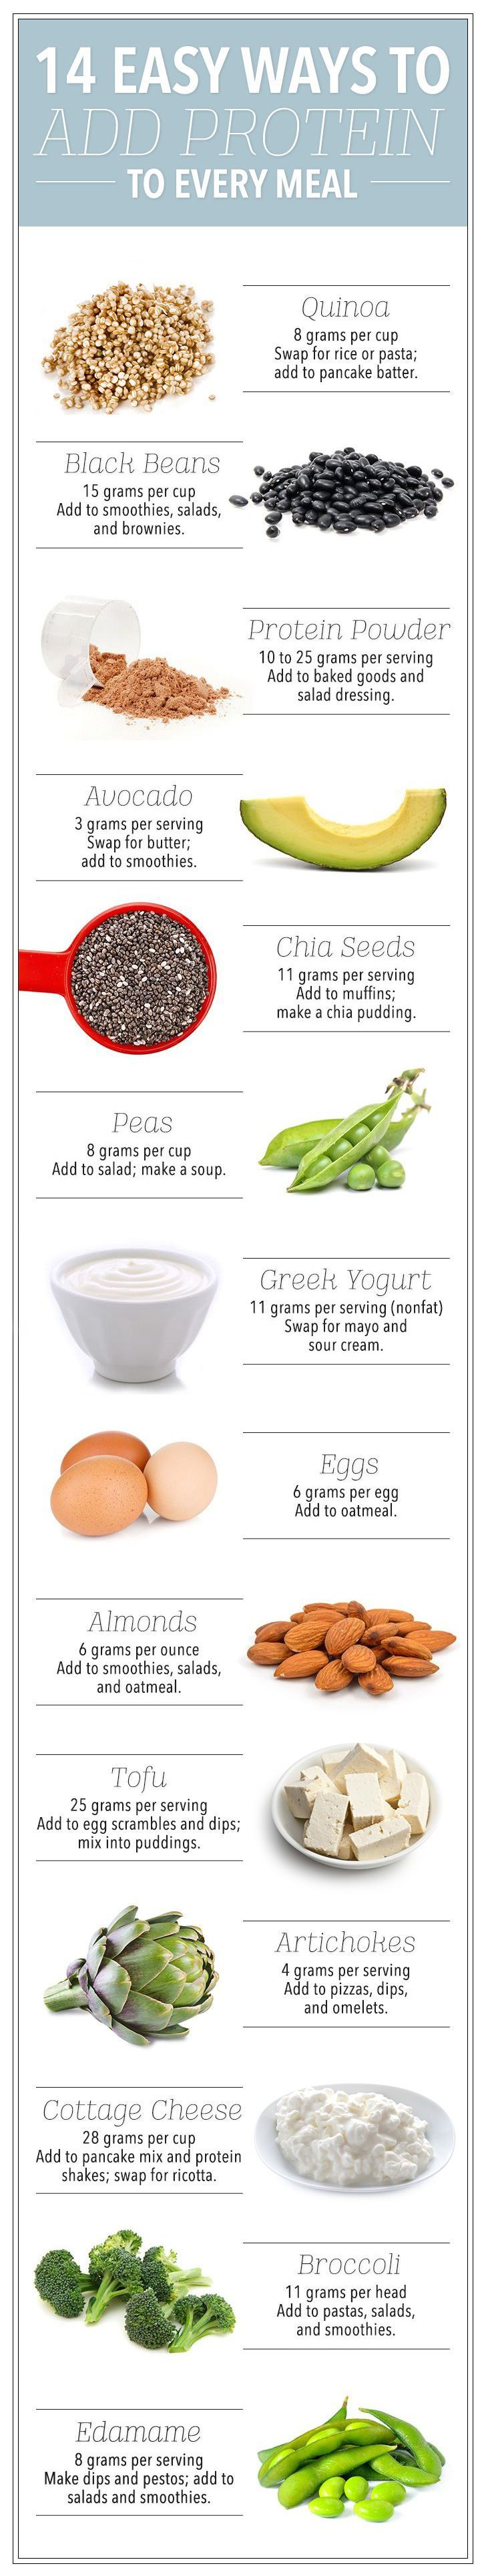 14 easy ways to add protein (to every meal)